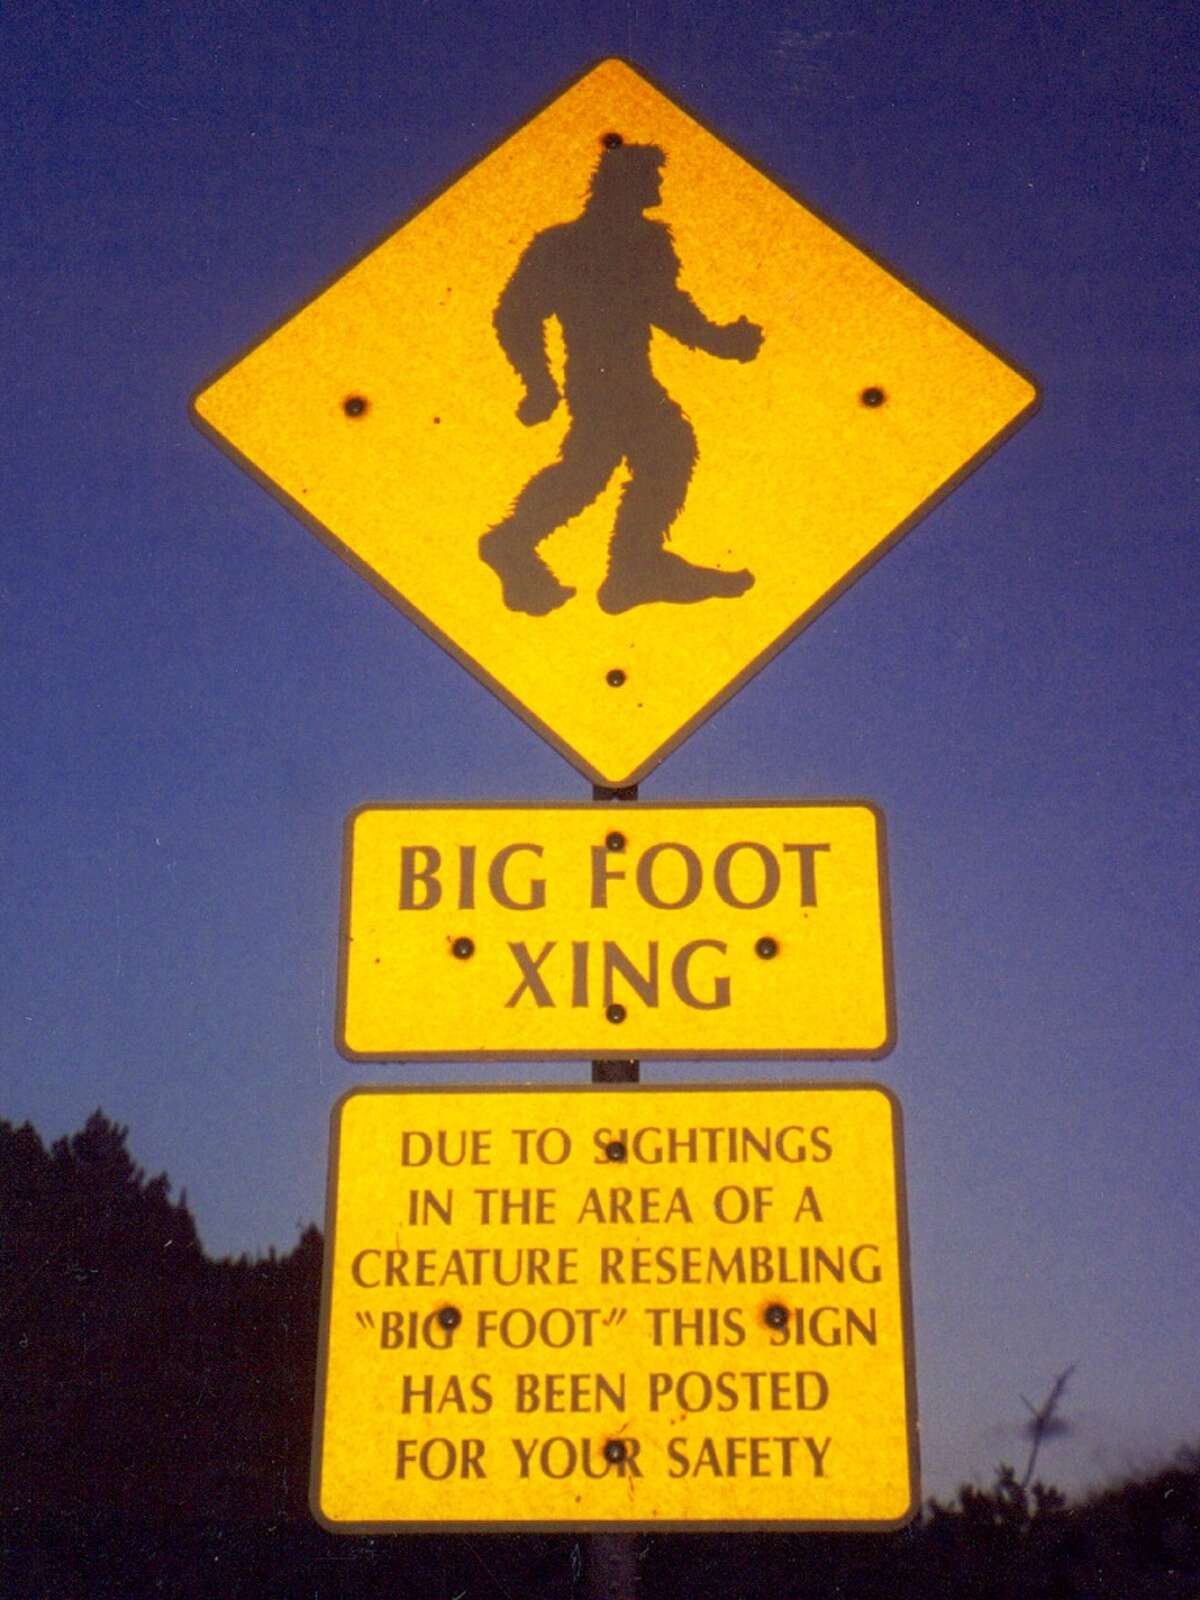 On the tragedy hoax front: Randy Lee Tenley was killed in 2012 while trying to impersonate Bigfoot on highway 93 in Montana. Tenley wanted to incite more Bigfoot sightings by dressing up in a military style ghillie suit and walking along the highway. He was struck by two cars, each driven by teenage girls, who were unable to stop by the time they saw him.